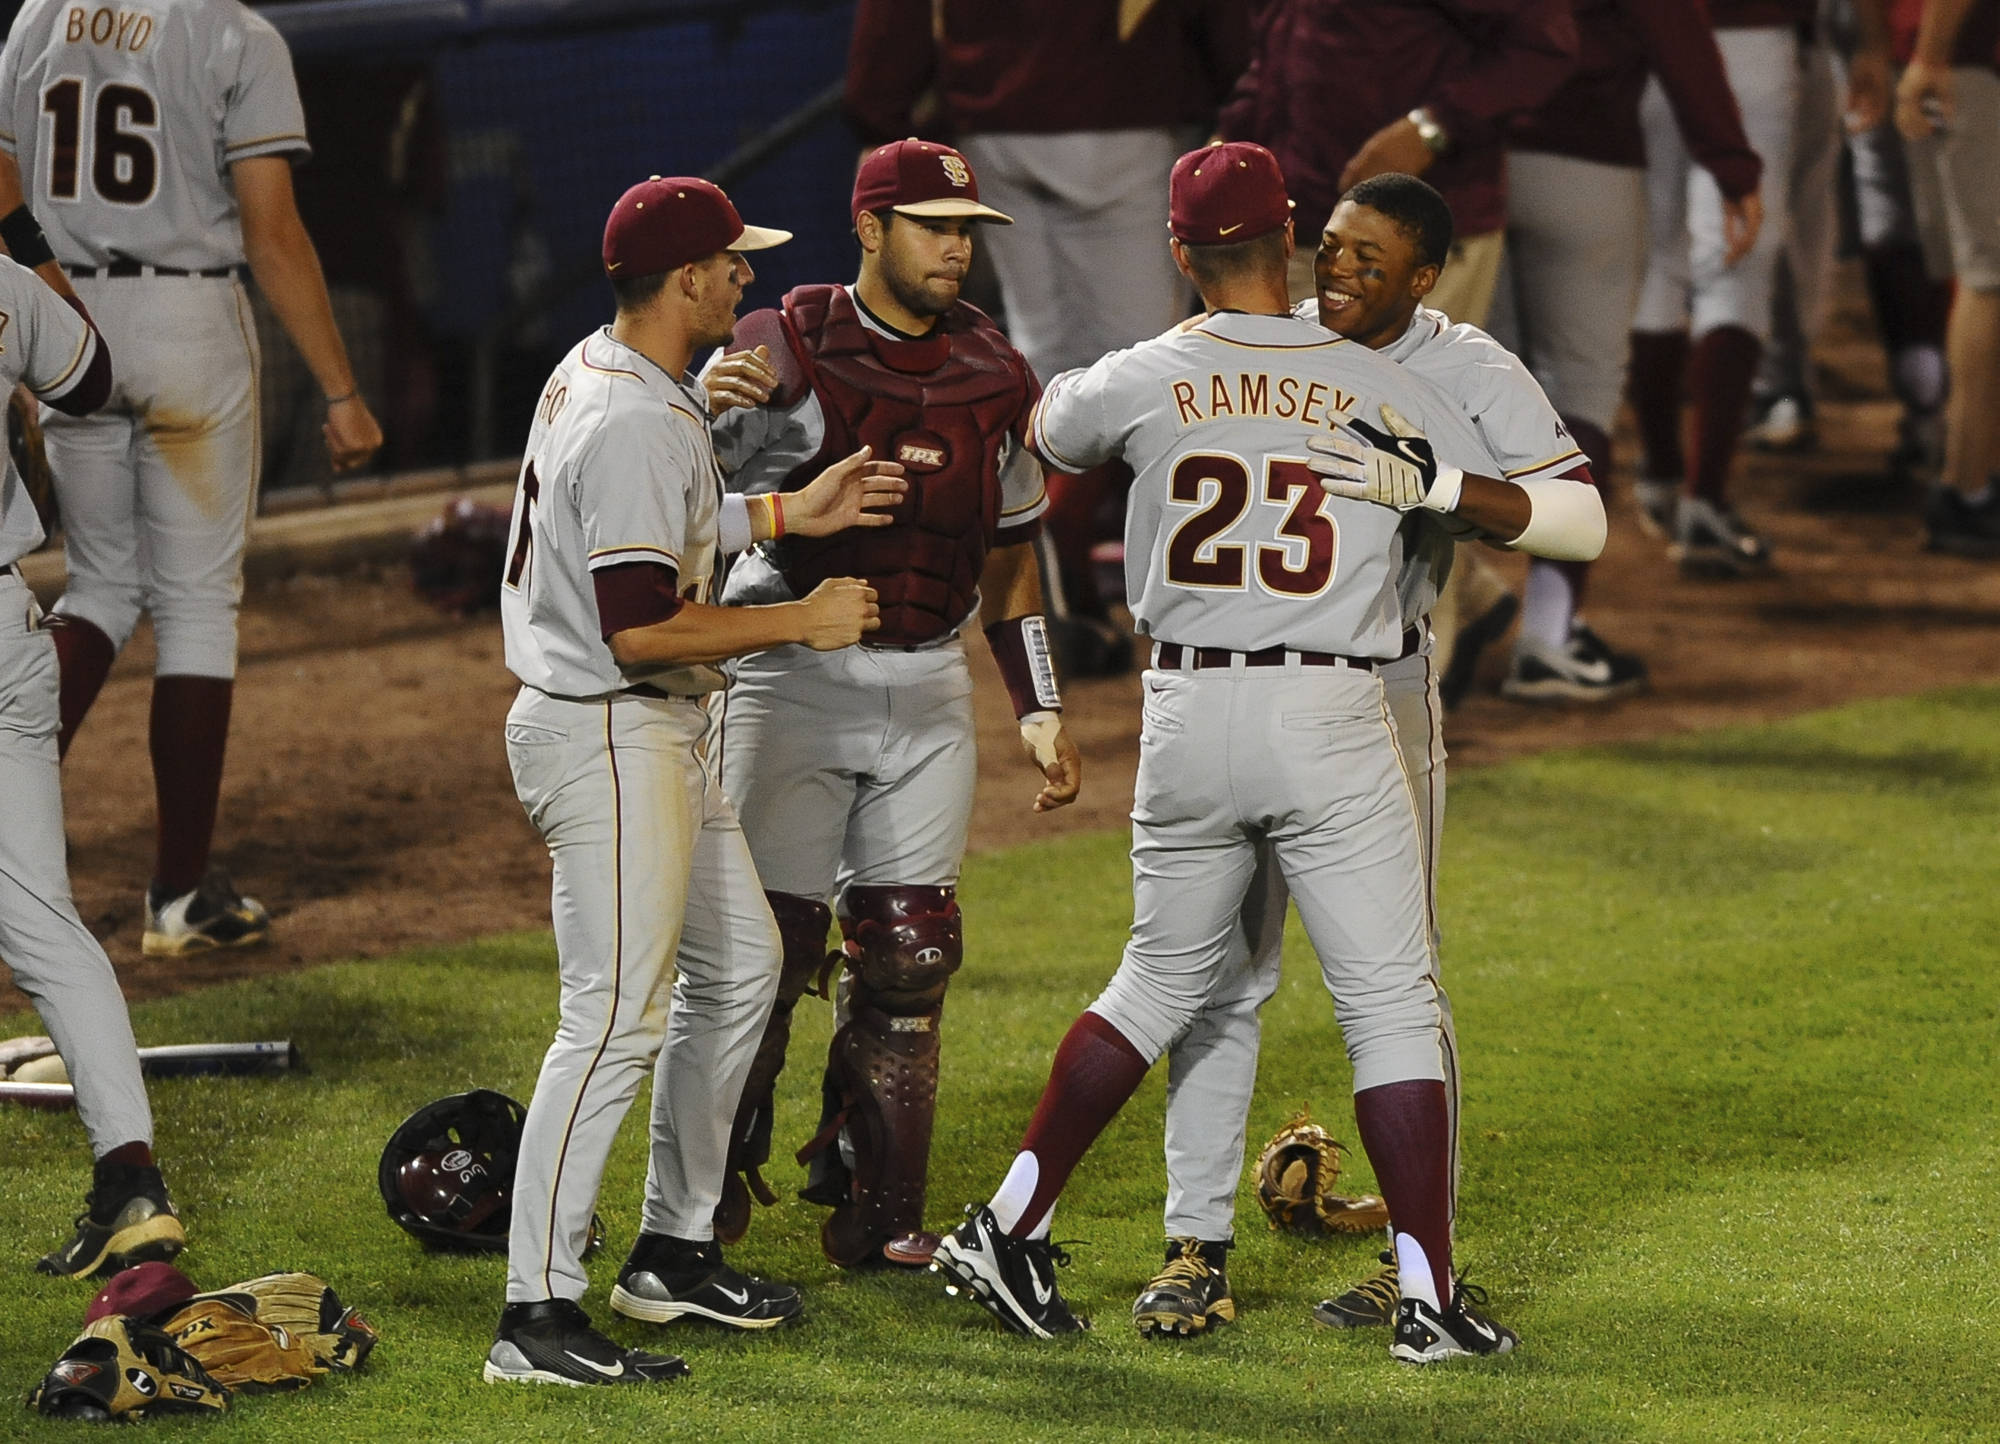 Seminoles Celebrate the Win (Photo Courtesy Steve McLaughlin)